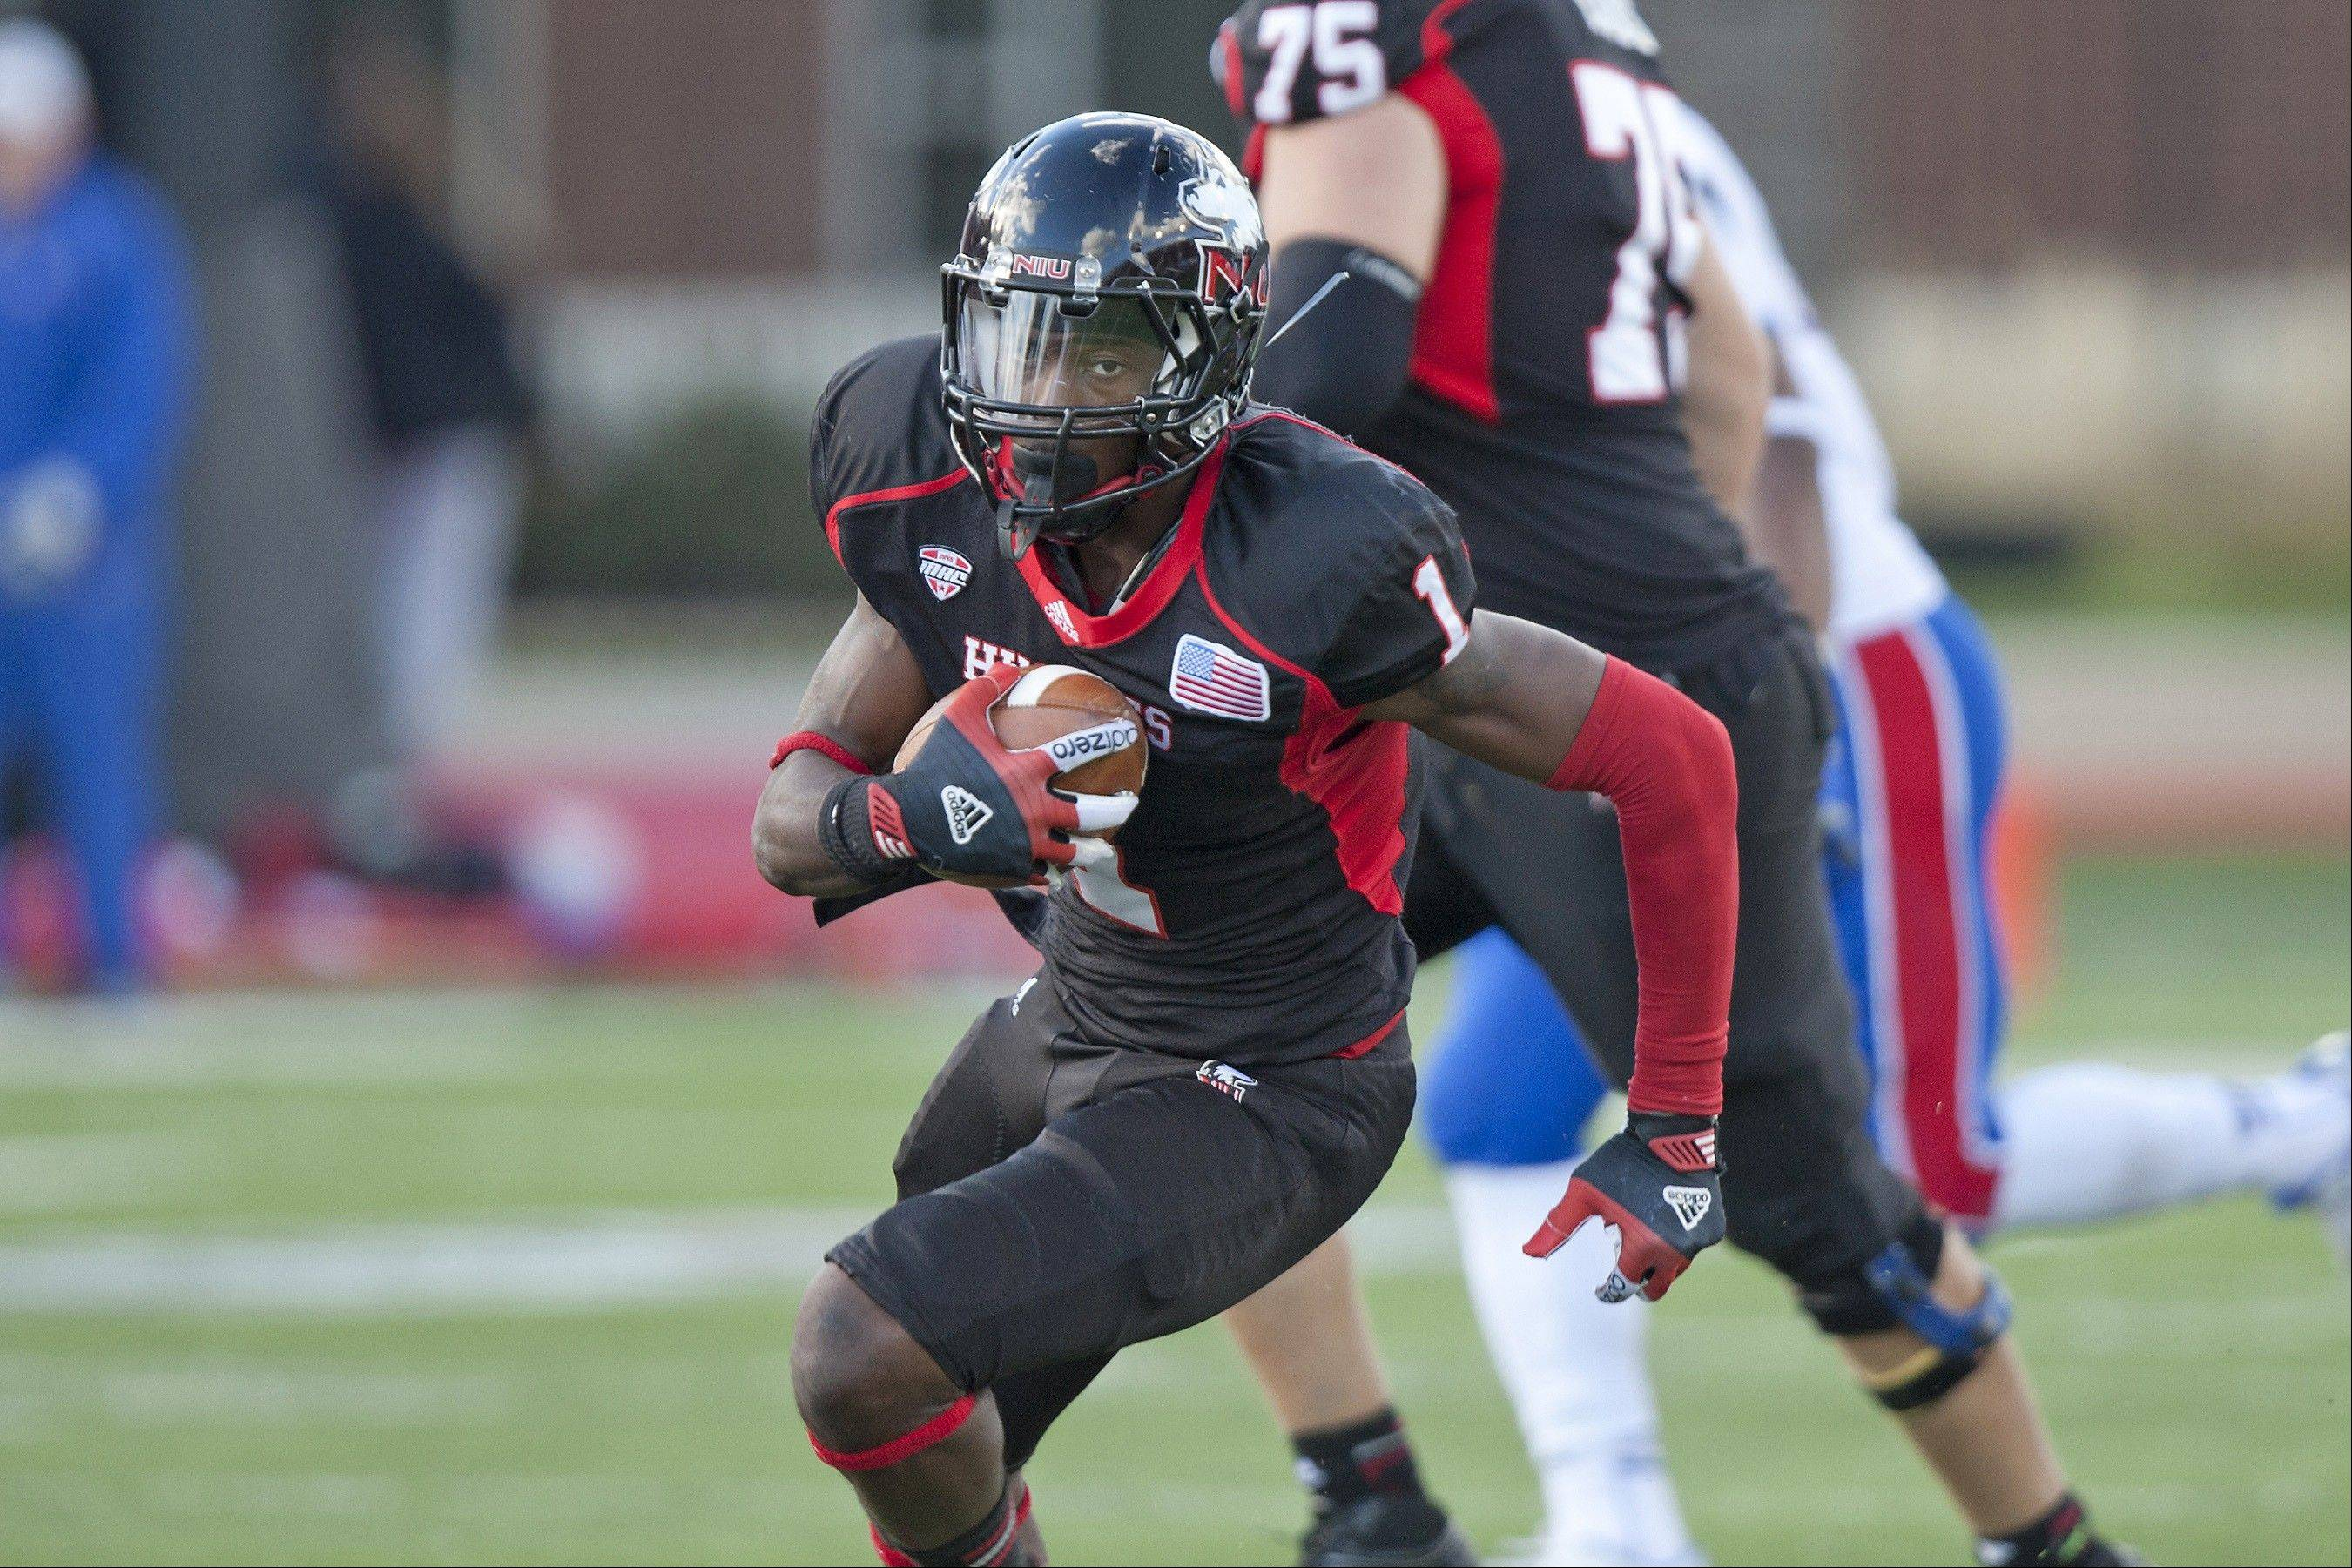 Martel Moore, a wide receiver, is part of a 13-member senior class that has collected the most wins in the history of Northern Illinois University's football program and is headed to its fourth straight bowl game.